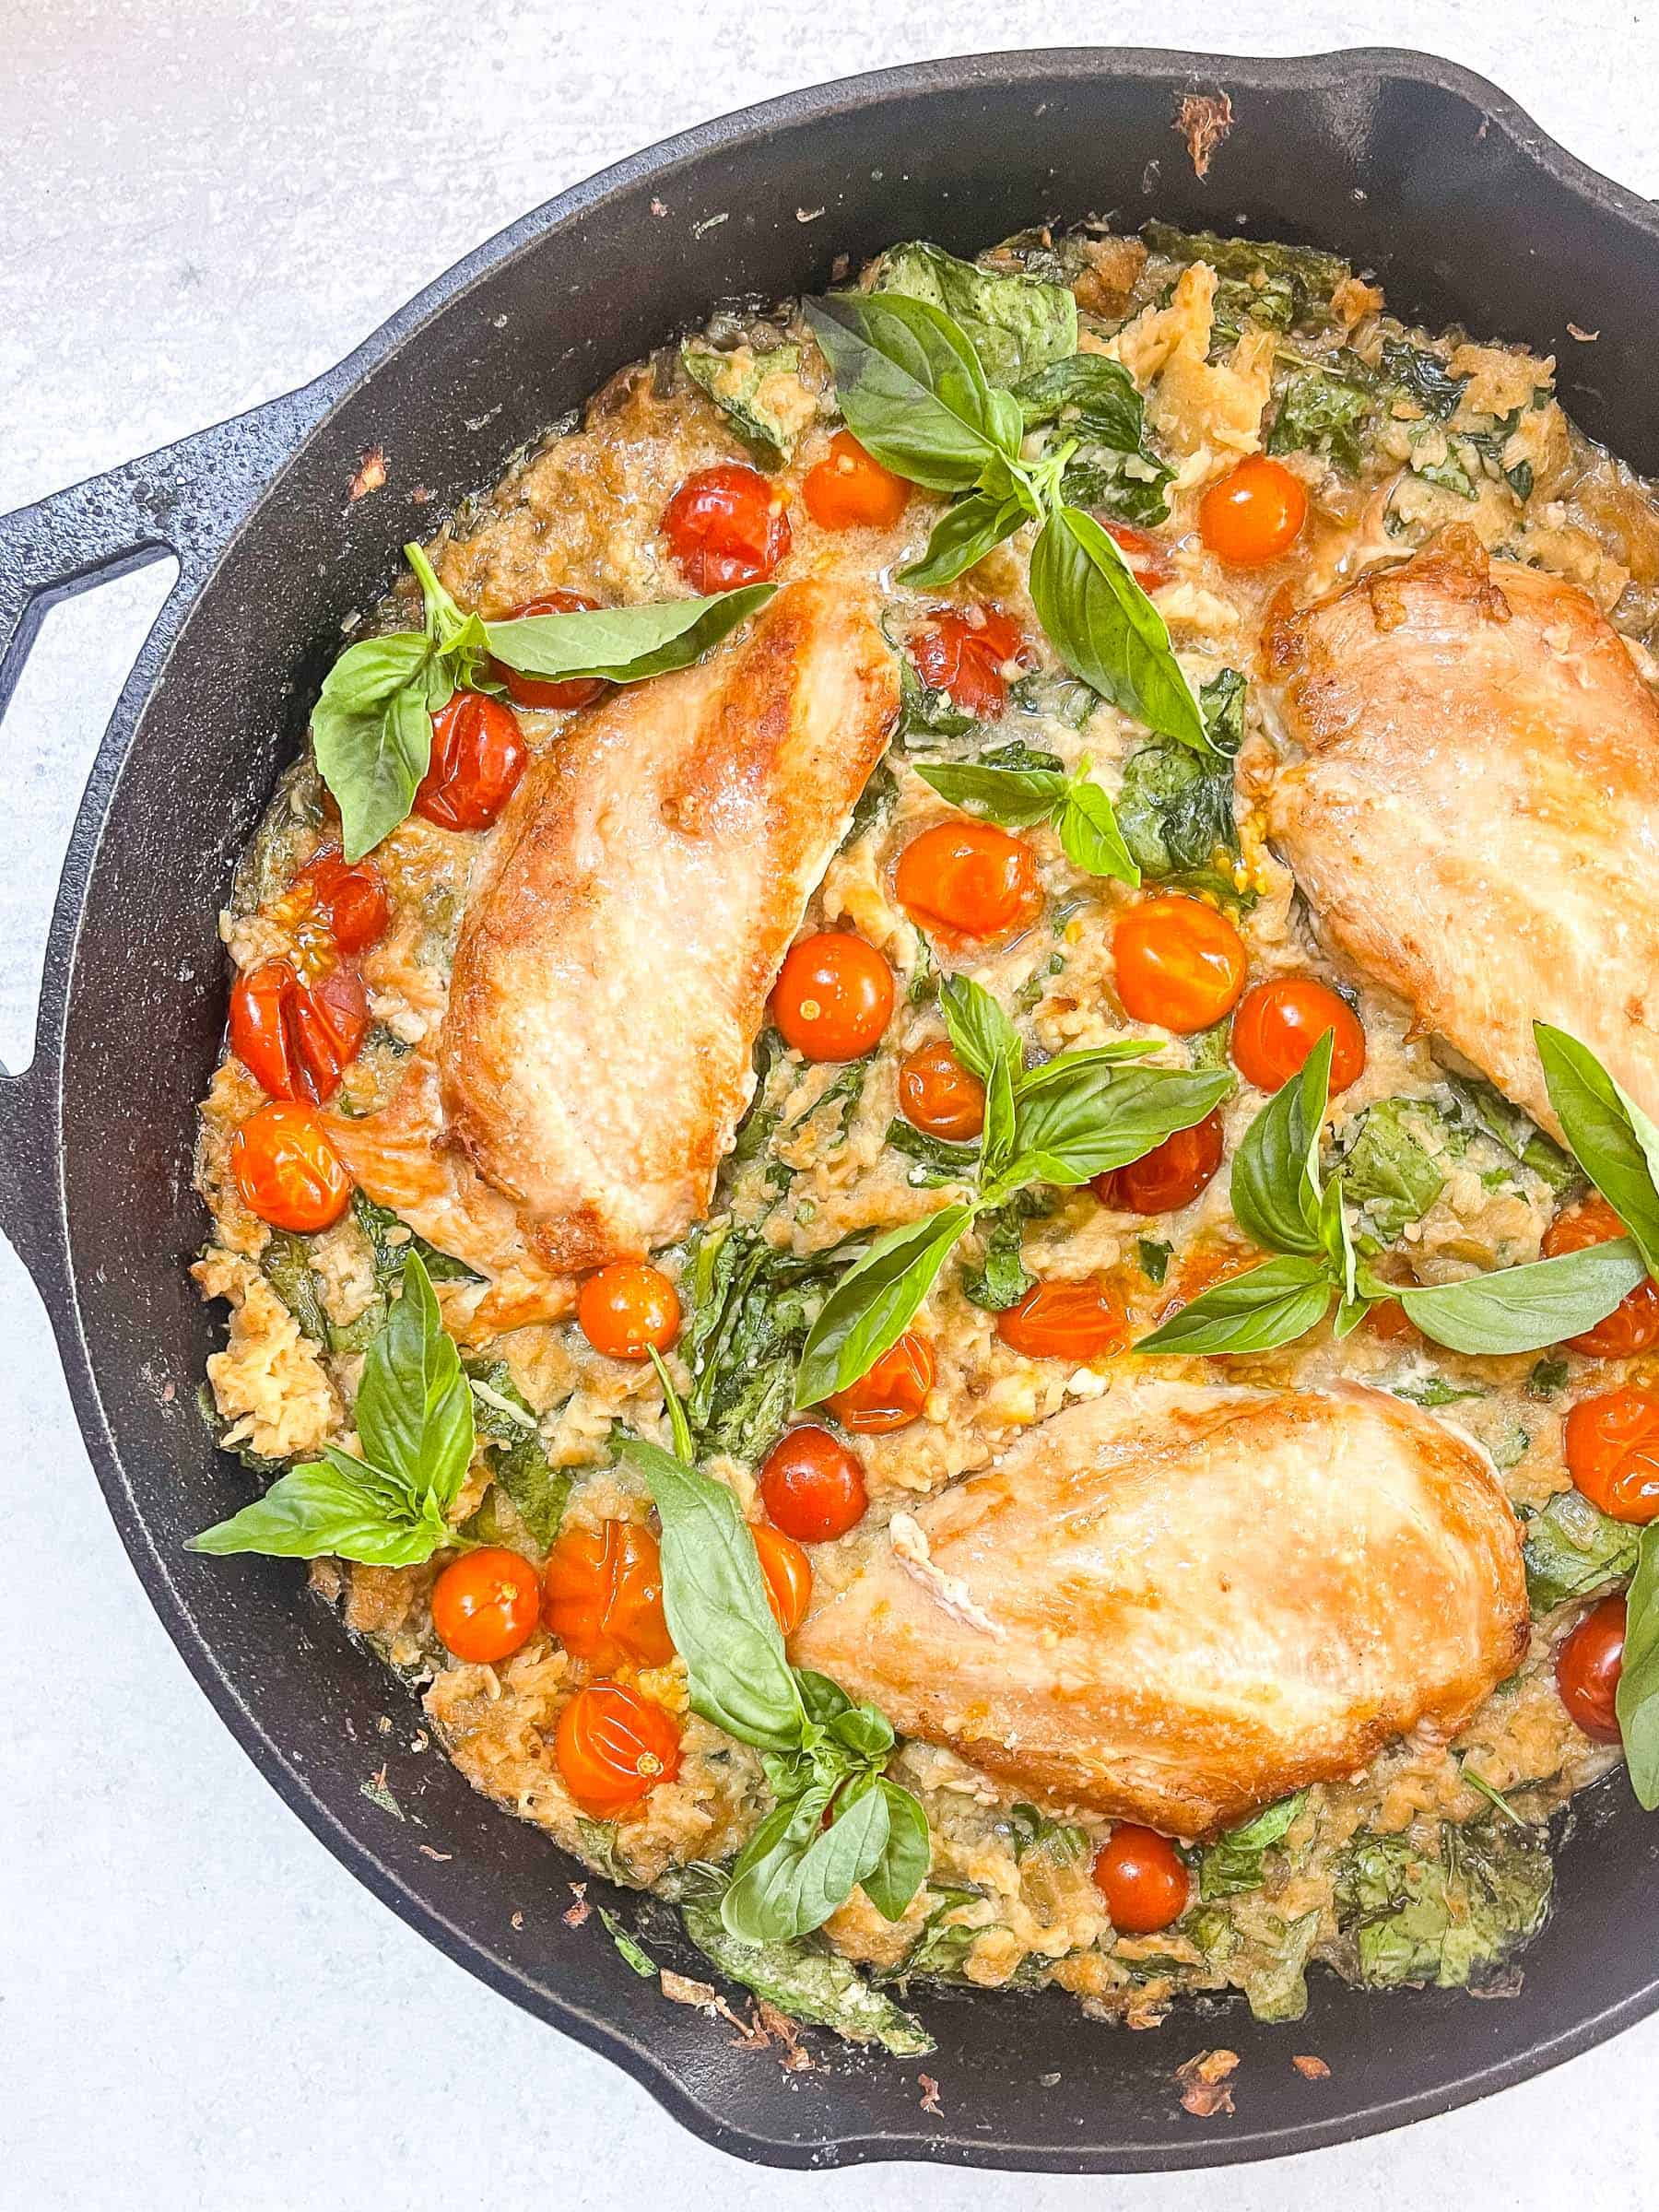 keto creamy chicken and tomato casserole in a black cast iron skillet with a white background